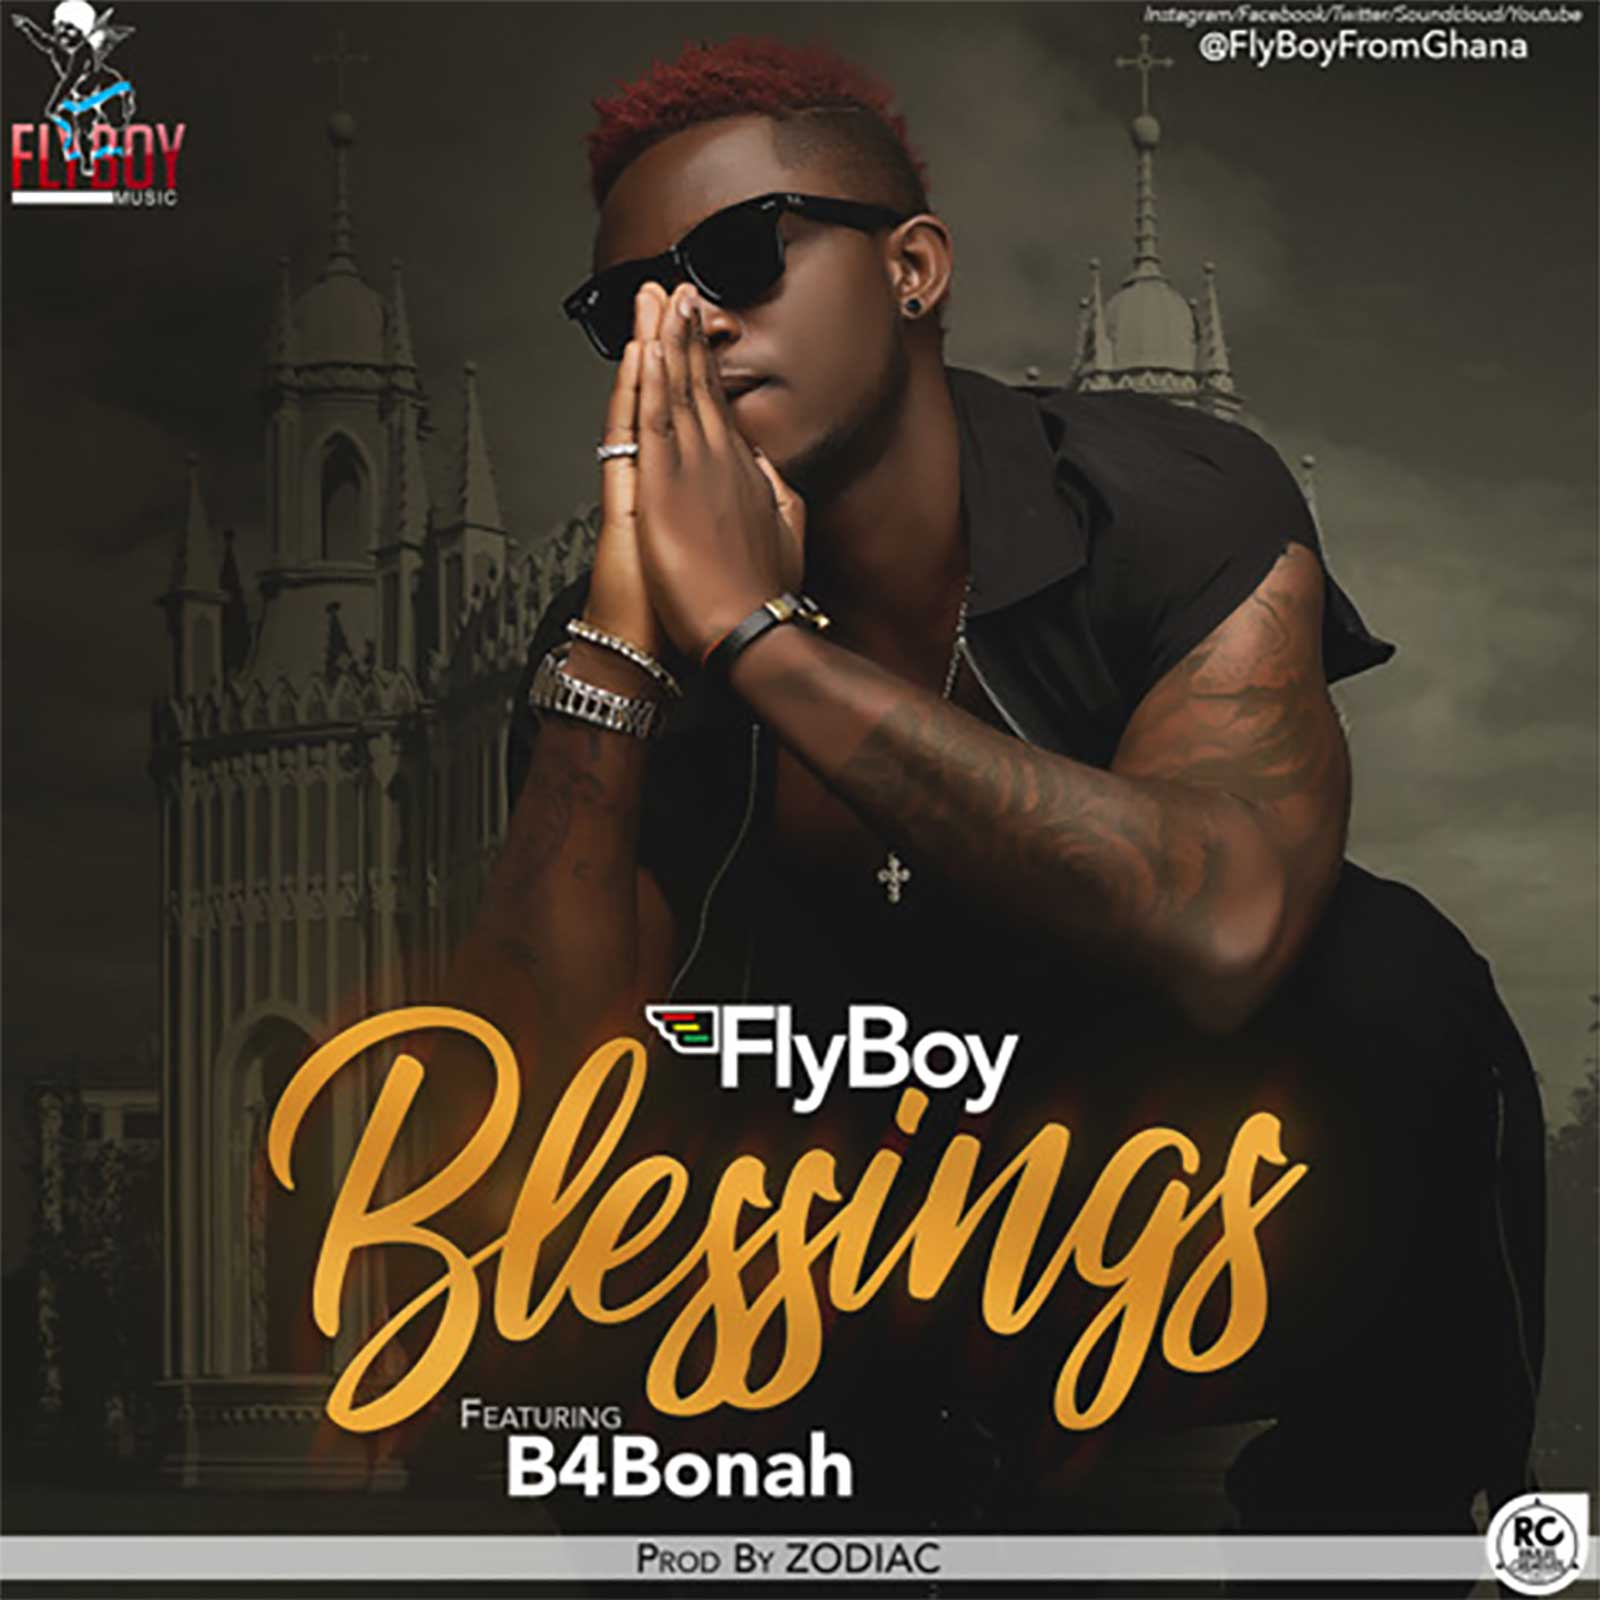 Blessings by FlyBoy feat. B4Bonah